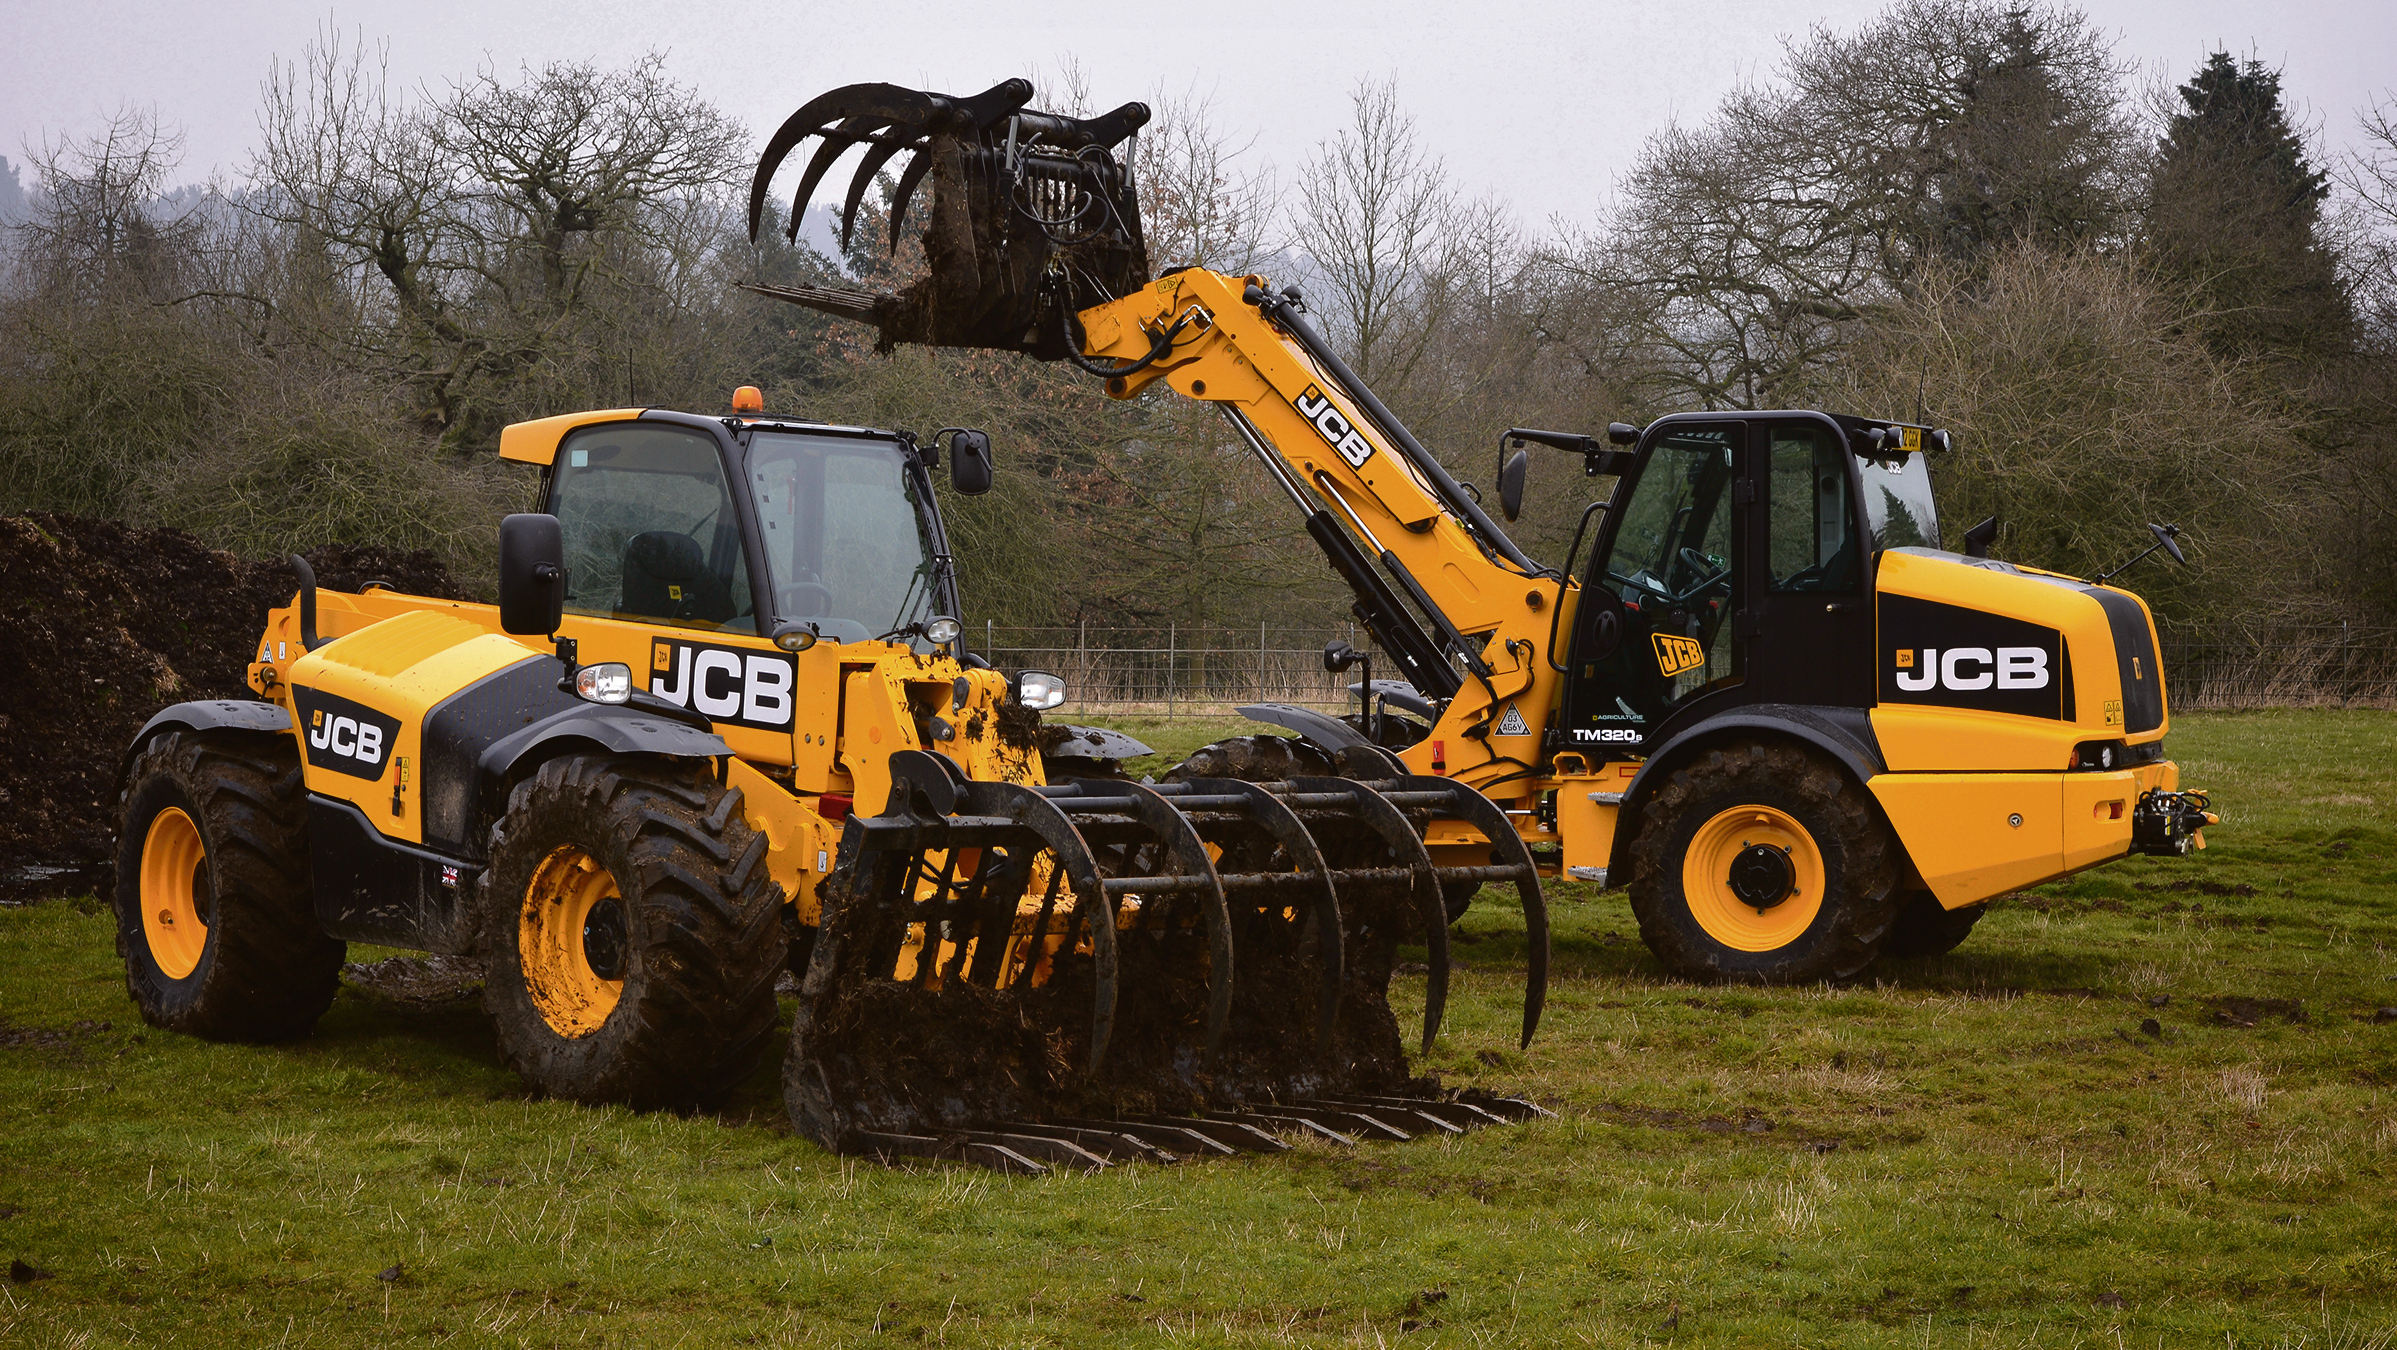 On test: JCB's new telehandlers